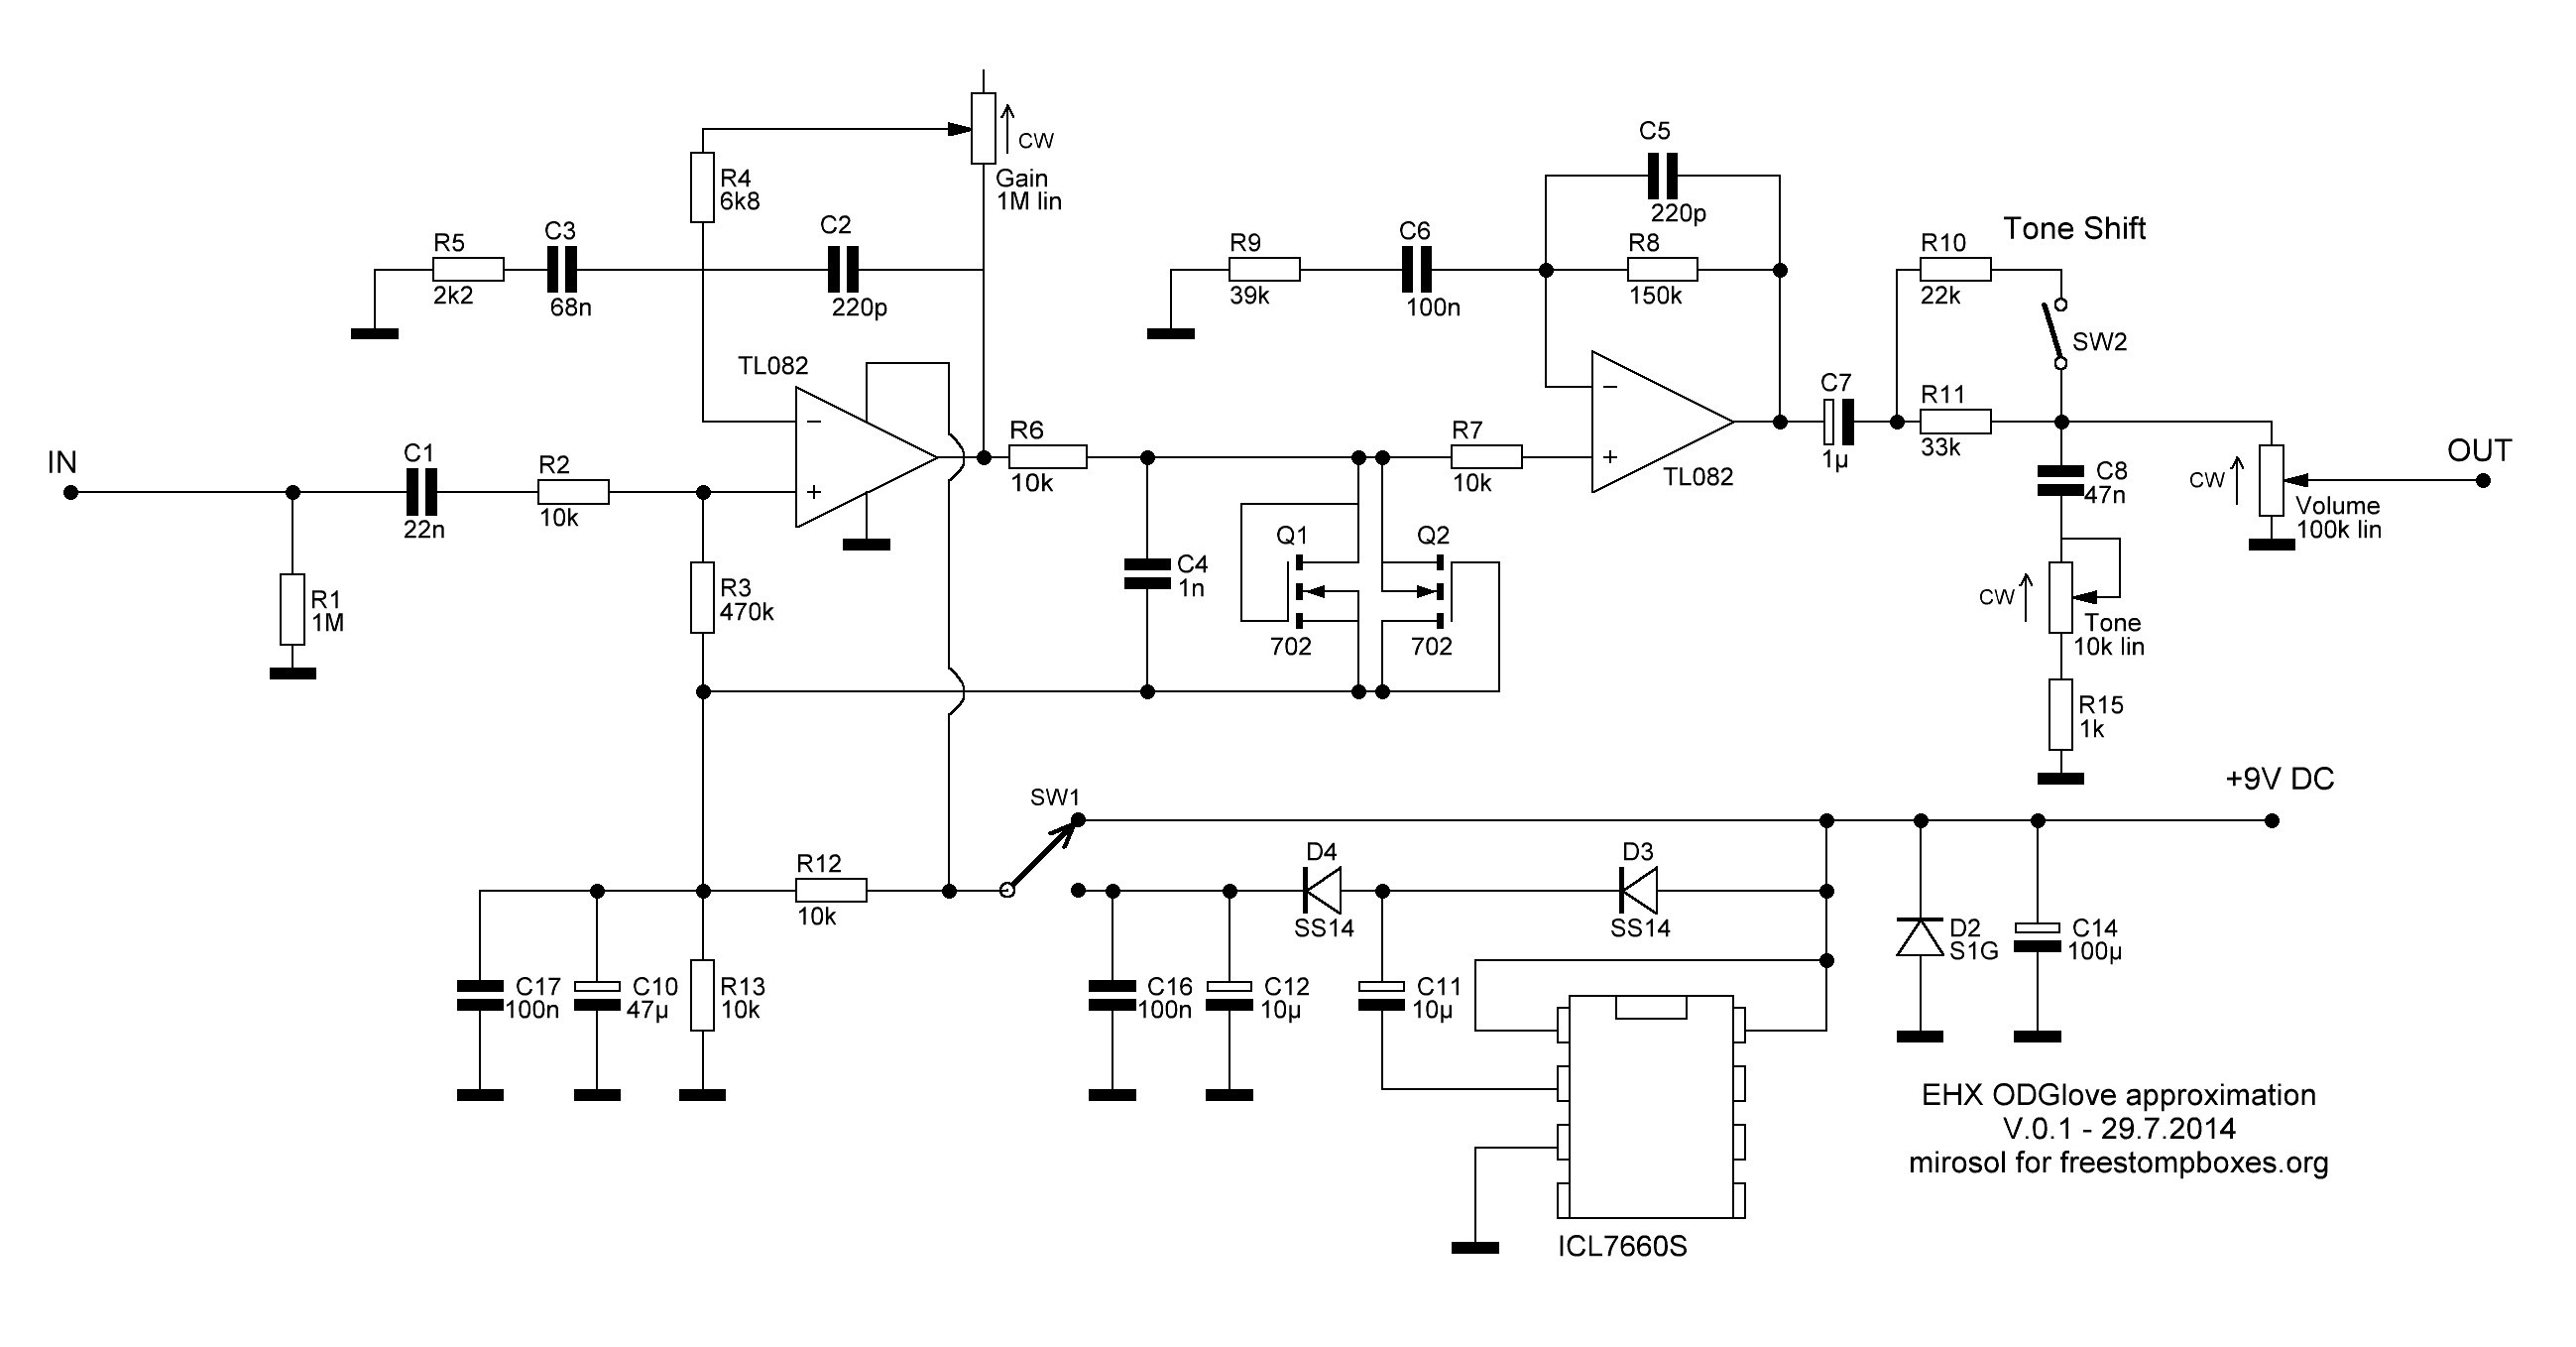 Fy-6 Super Fuzz Schematic Perf and Pcb Effects Layouts 2016 Of Fy-6 Super Fuzz Schematic